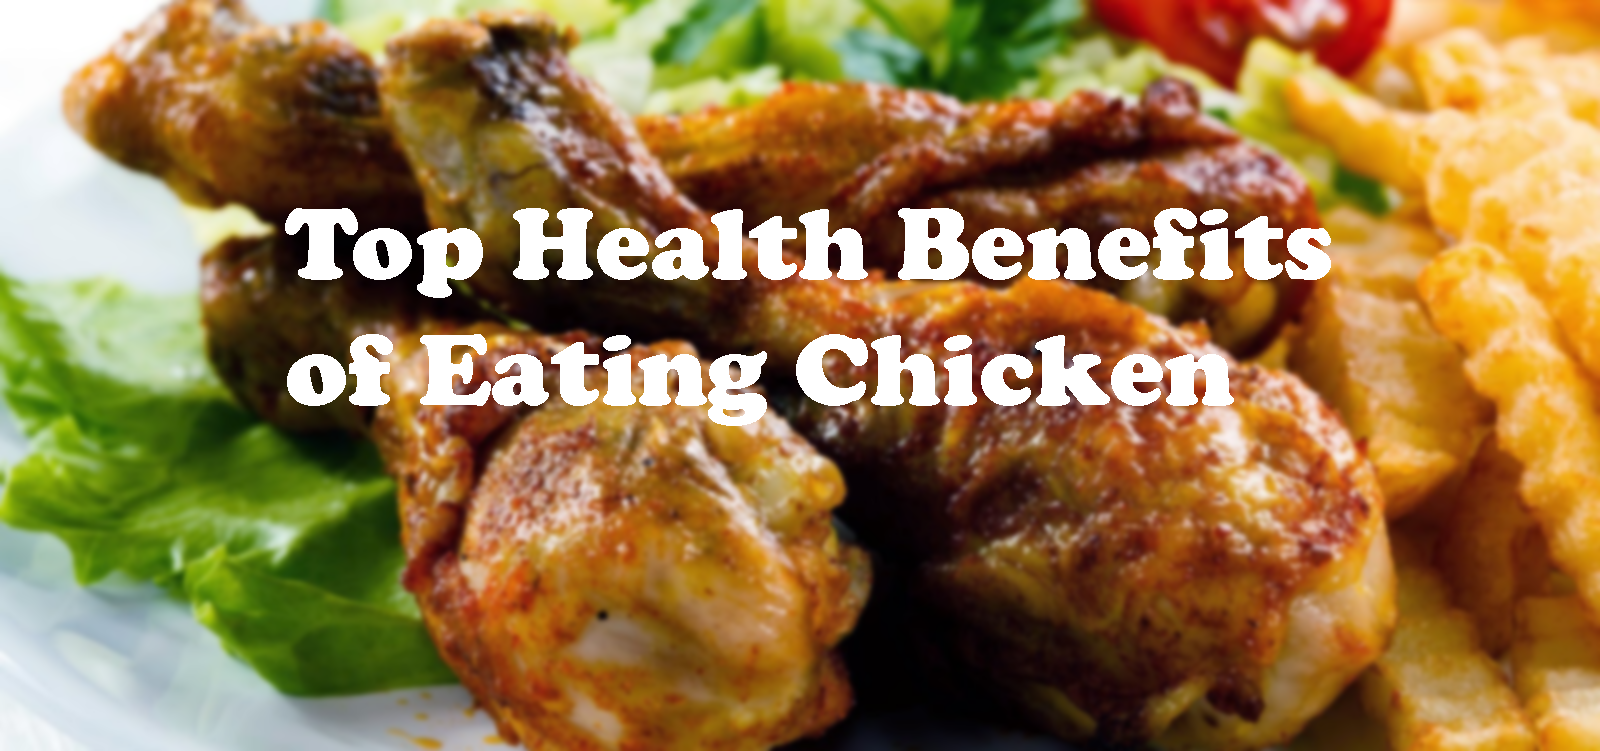 Top-Health-Benefits-of-Eating-Chicken